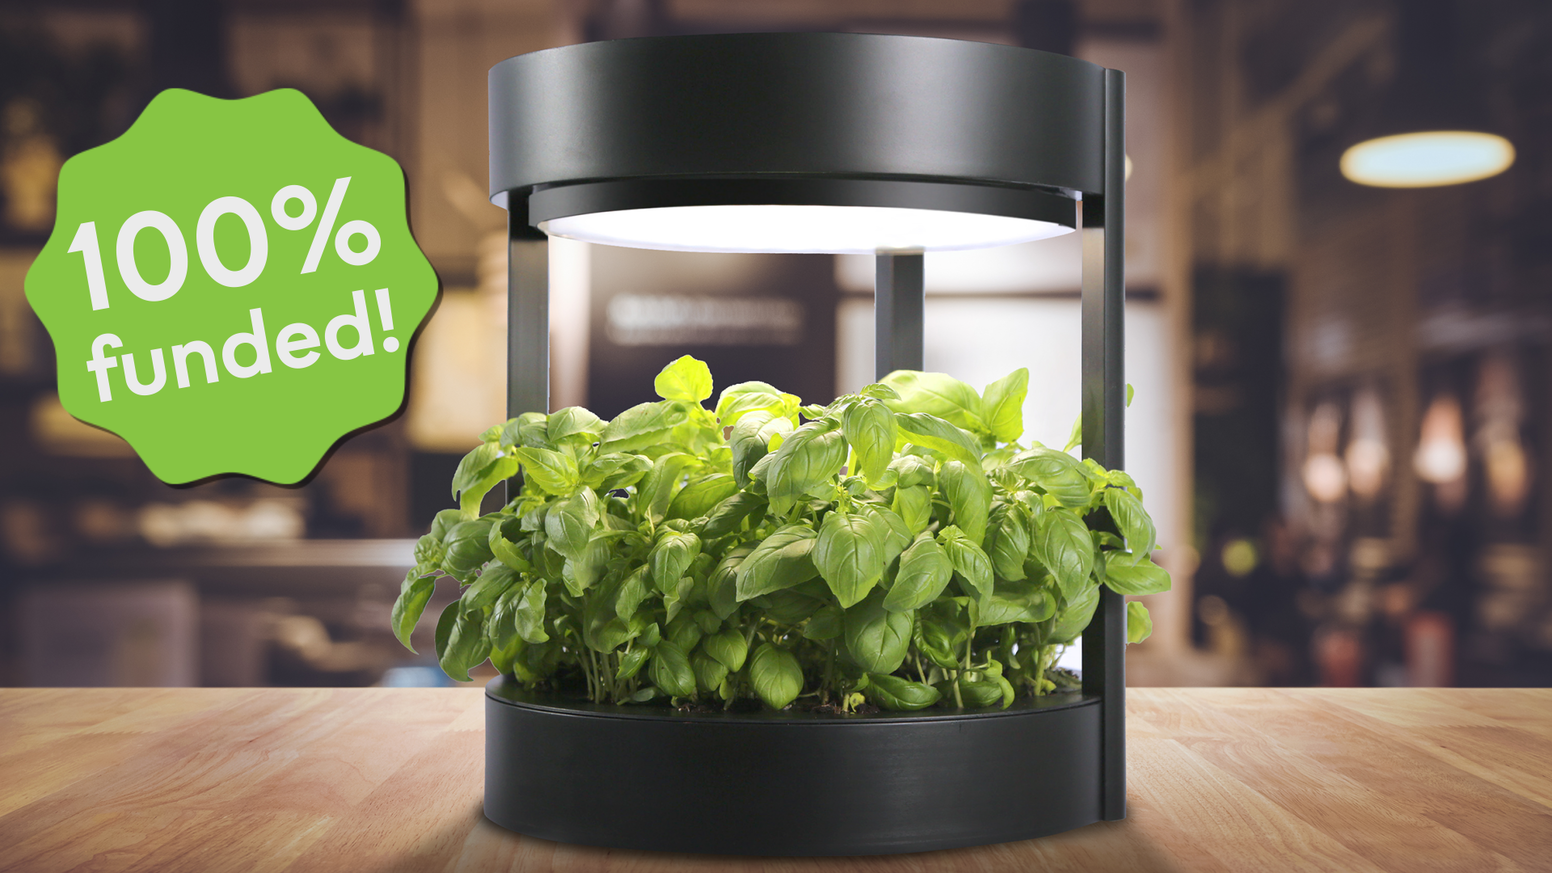 Grow up to 76 plants in a modular fully automatic gardening system created from environment friendly materials